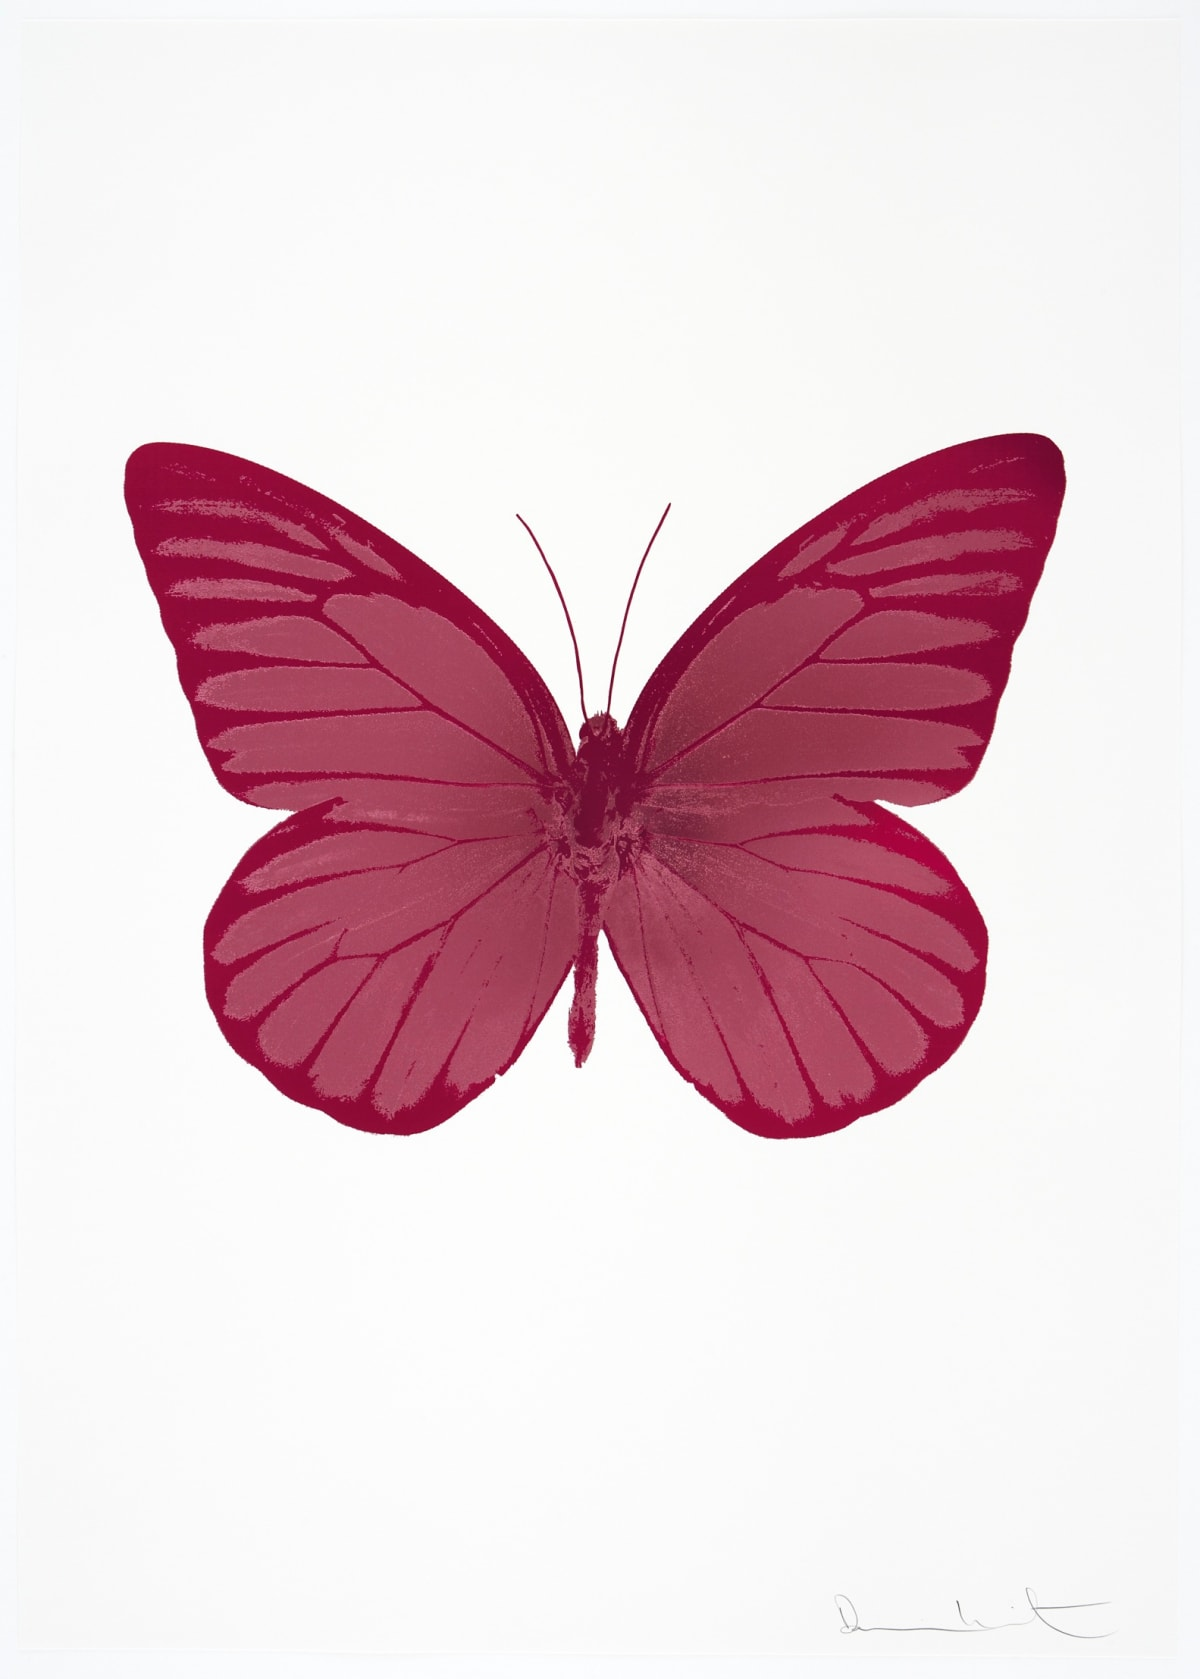 Damien Hirst The Souls I - Loganberry Pink/Blind Impression/Fuchsia Pink, 2010 2 colour foil block on 300gsm Arches 88 archival paper. Signed and numbered. Published by Paul Stolper and Other Criteria 72 x 51cm OC7784 / 659-47 Edition of 15